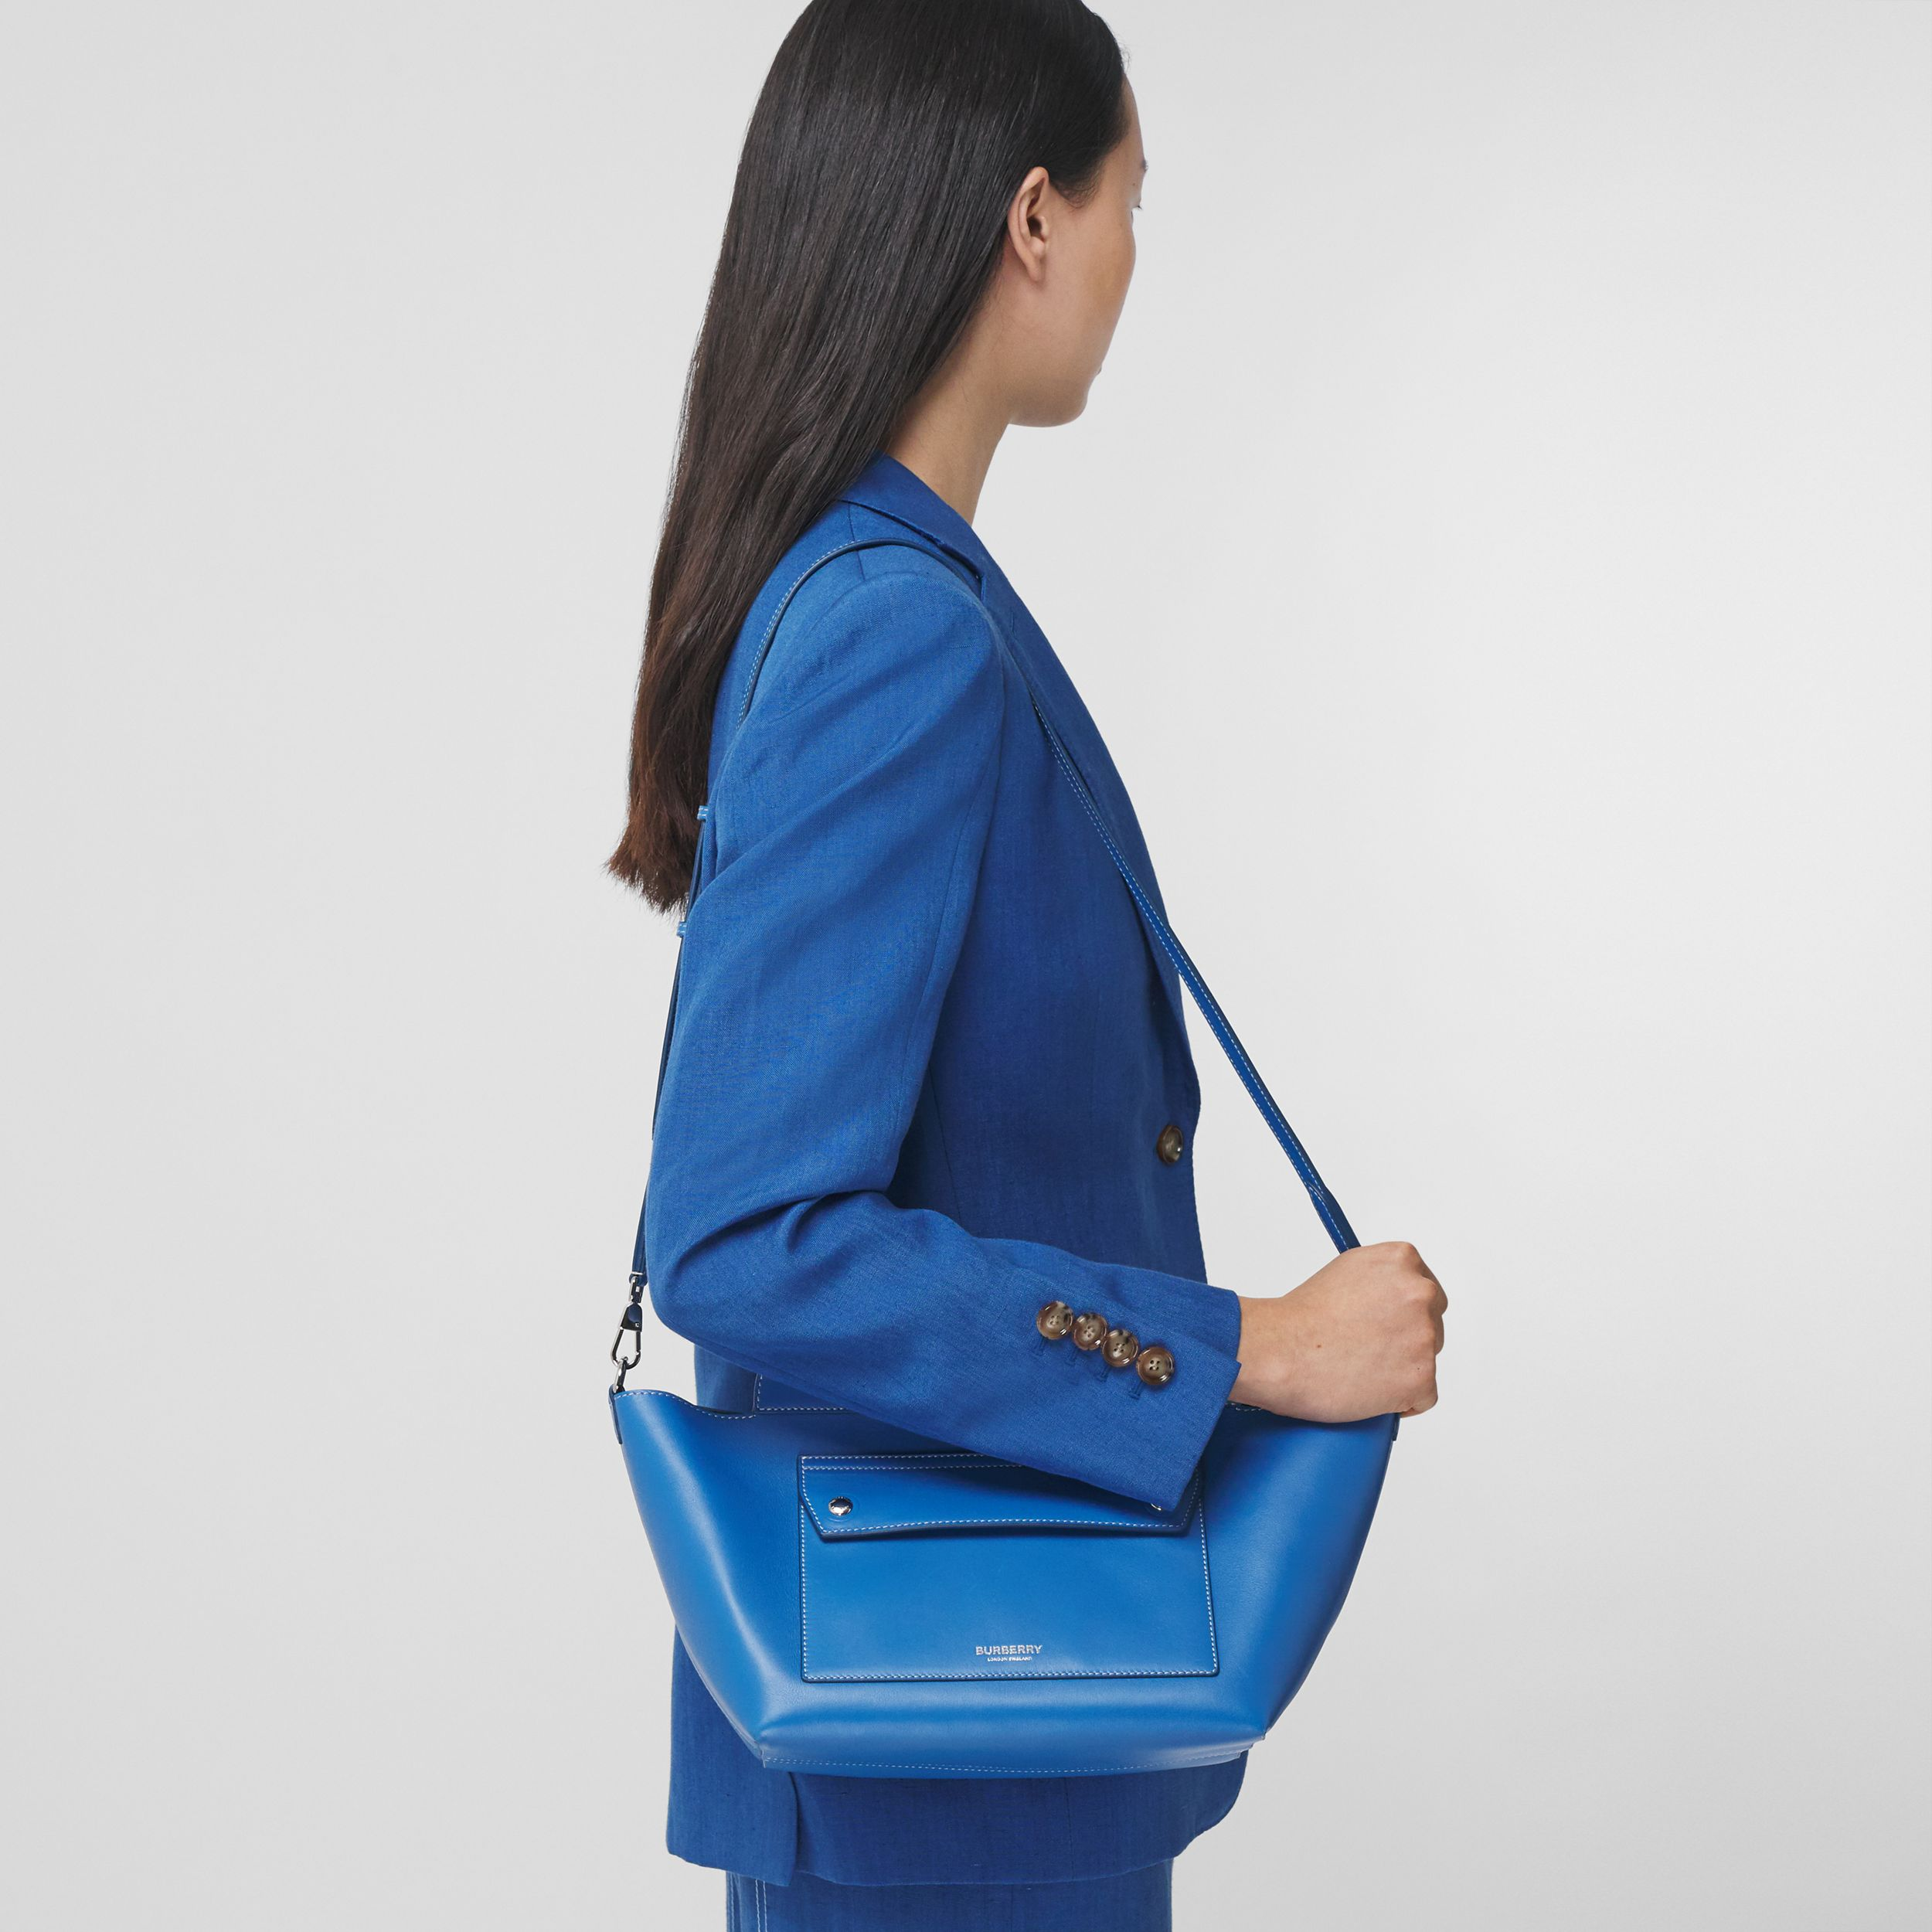 Mini Leather Soft Pocket Tote in Warm Royal Blue - Women | Burberry - 3